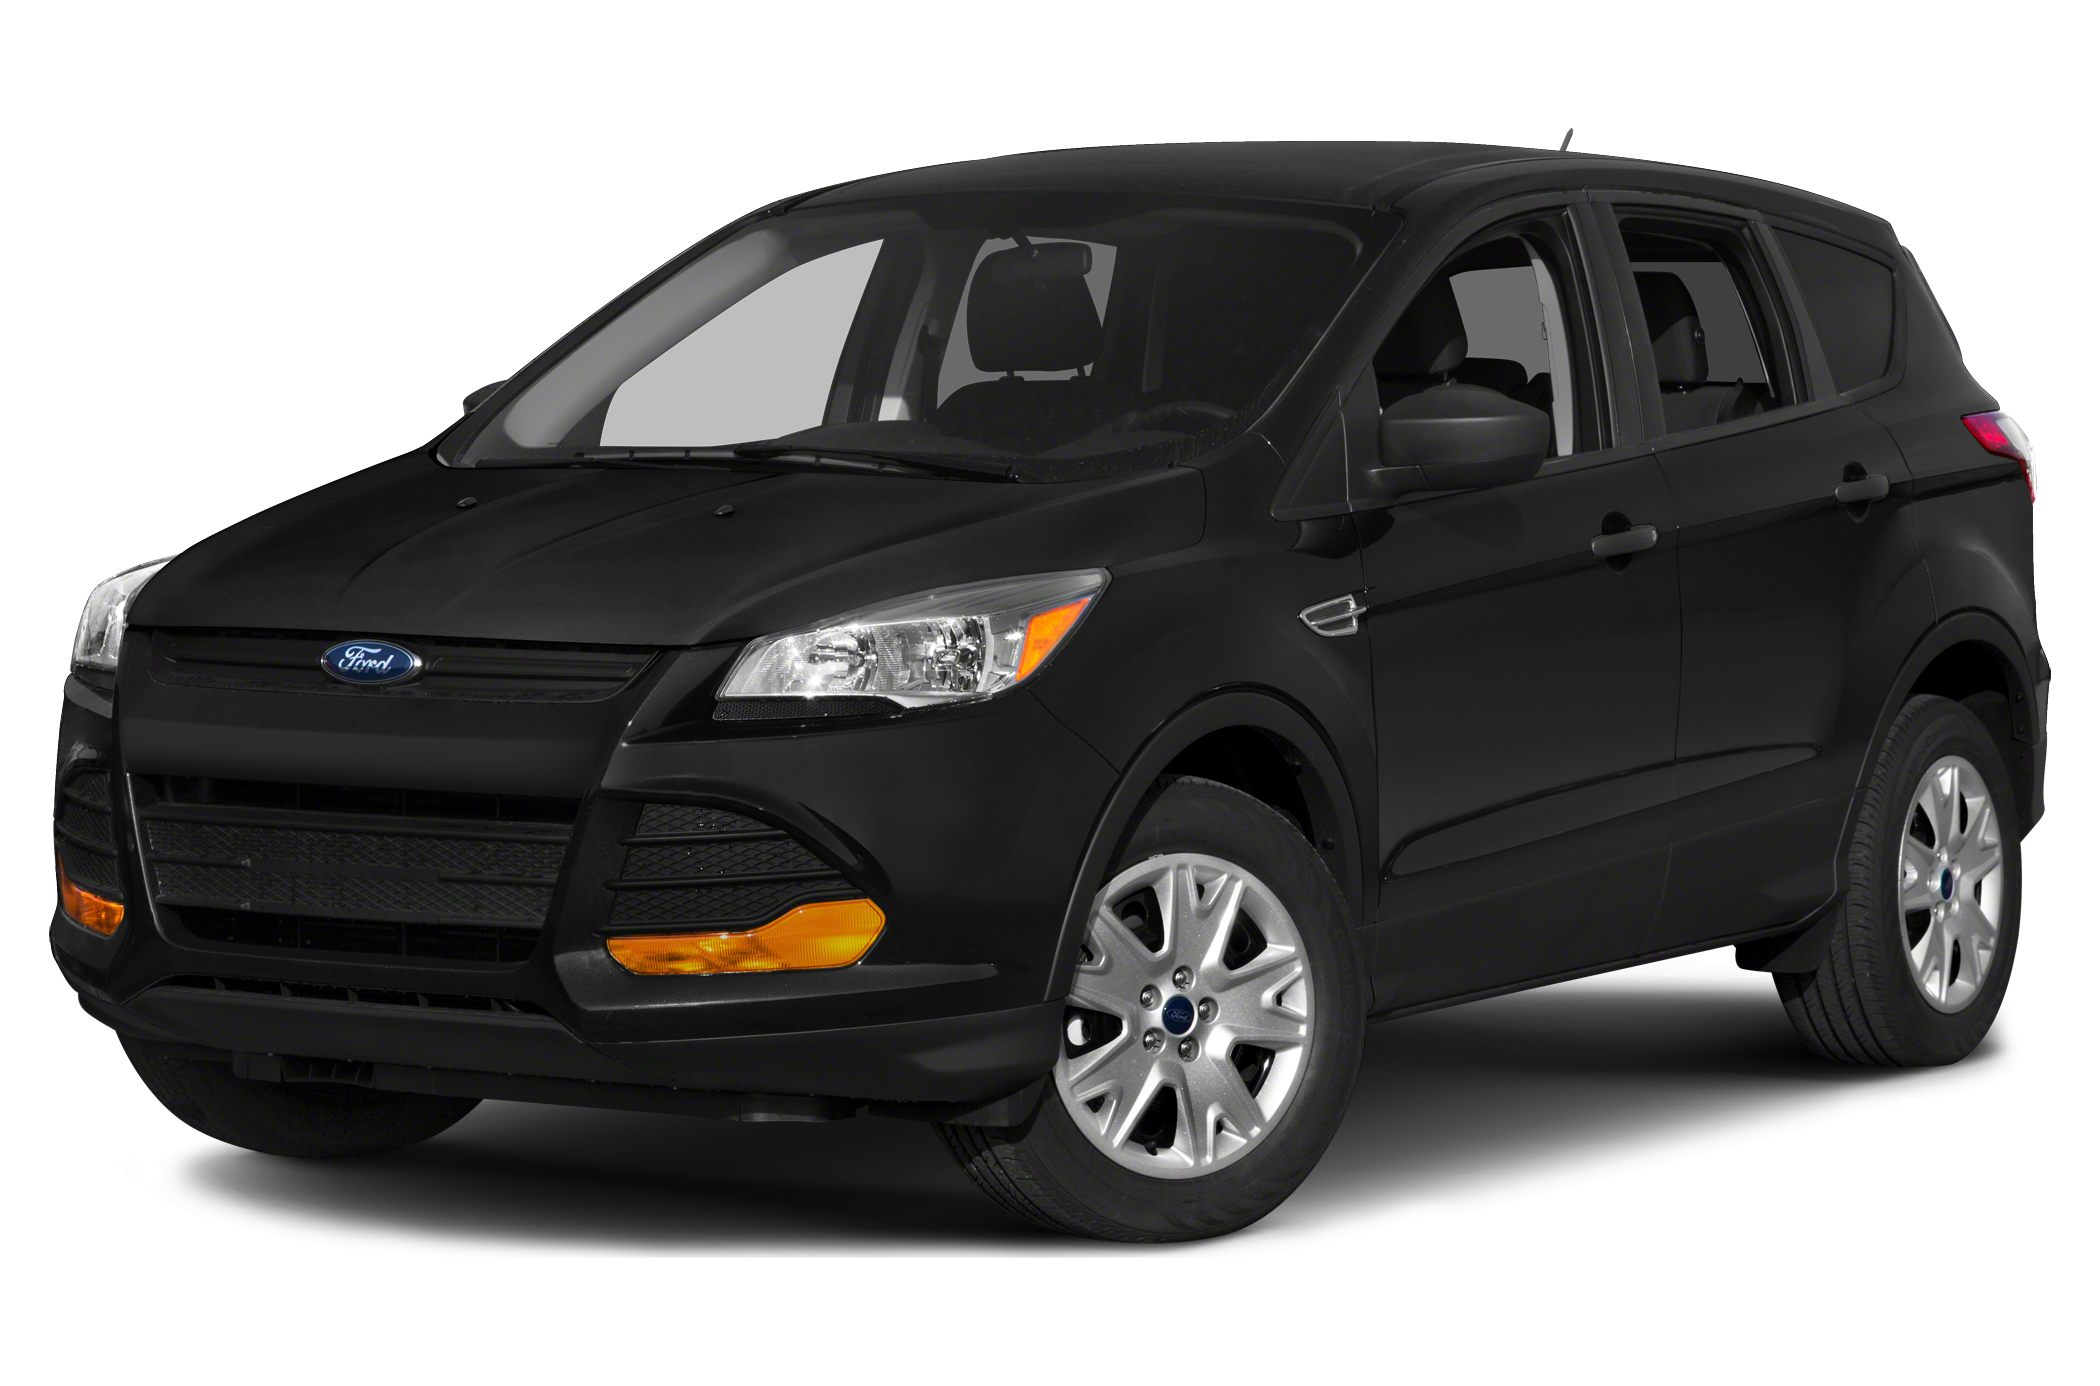 2015 Ford Escape S SUV for sale in New Albany for $22,958 with 5 miles